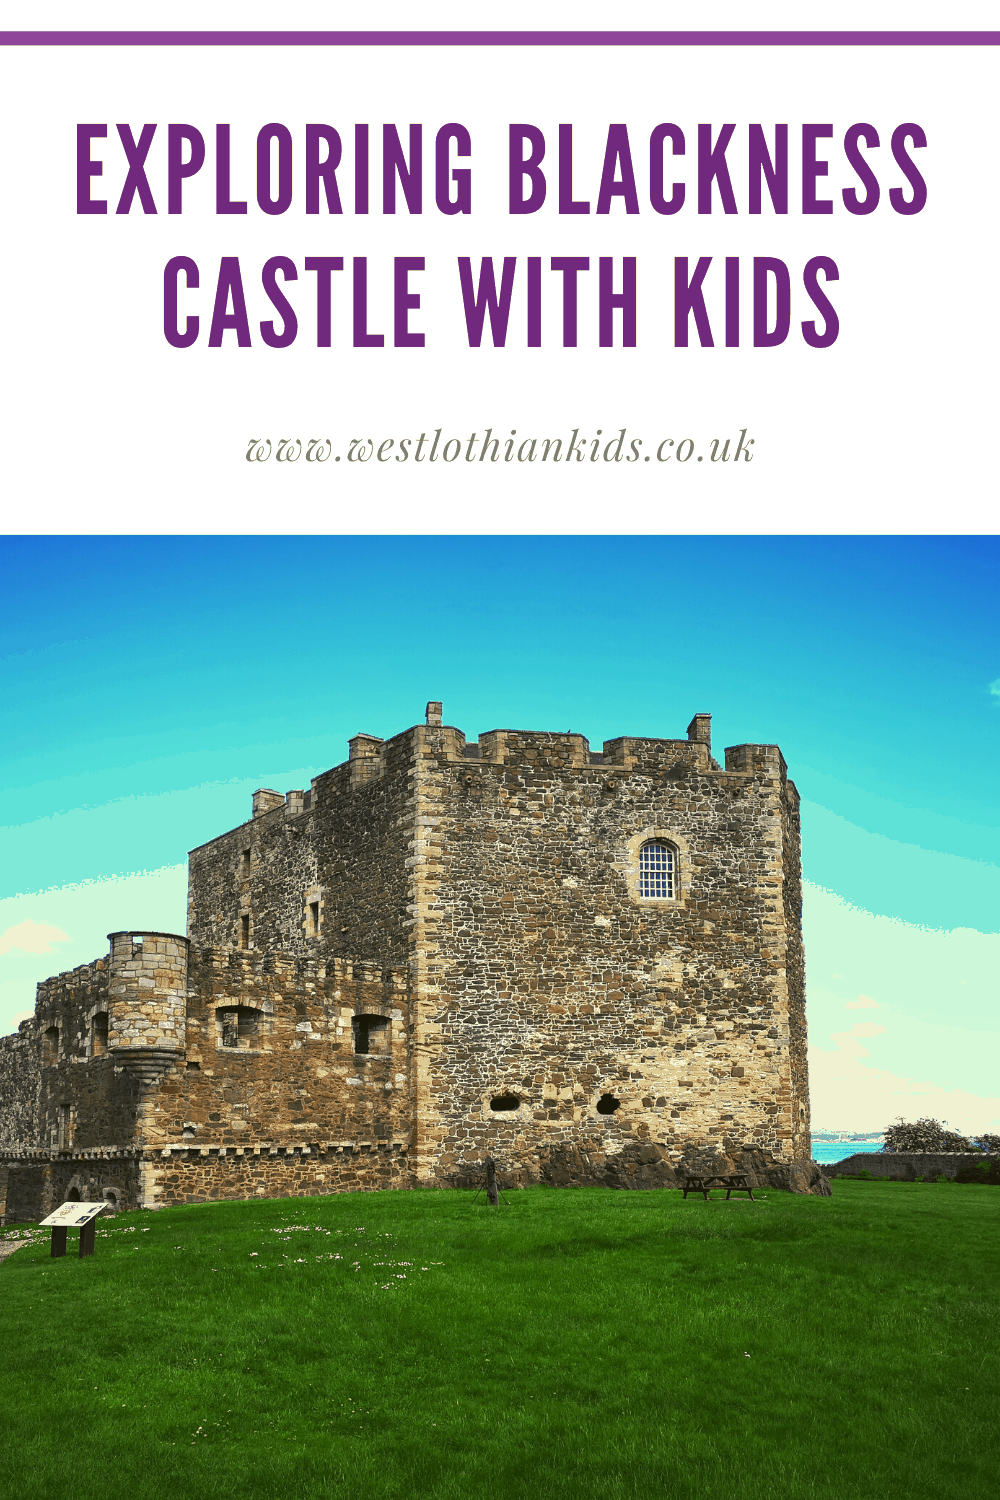 Exploring Blackness Castles near Linlithgow, Scotland With Kids